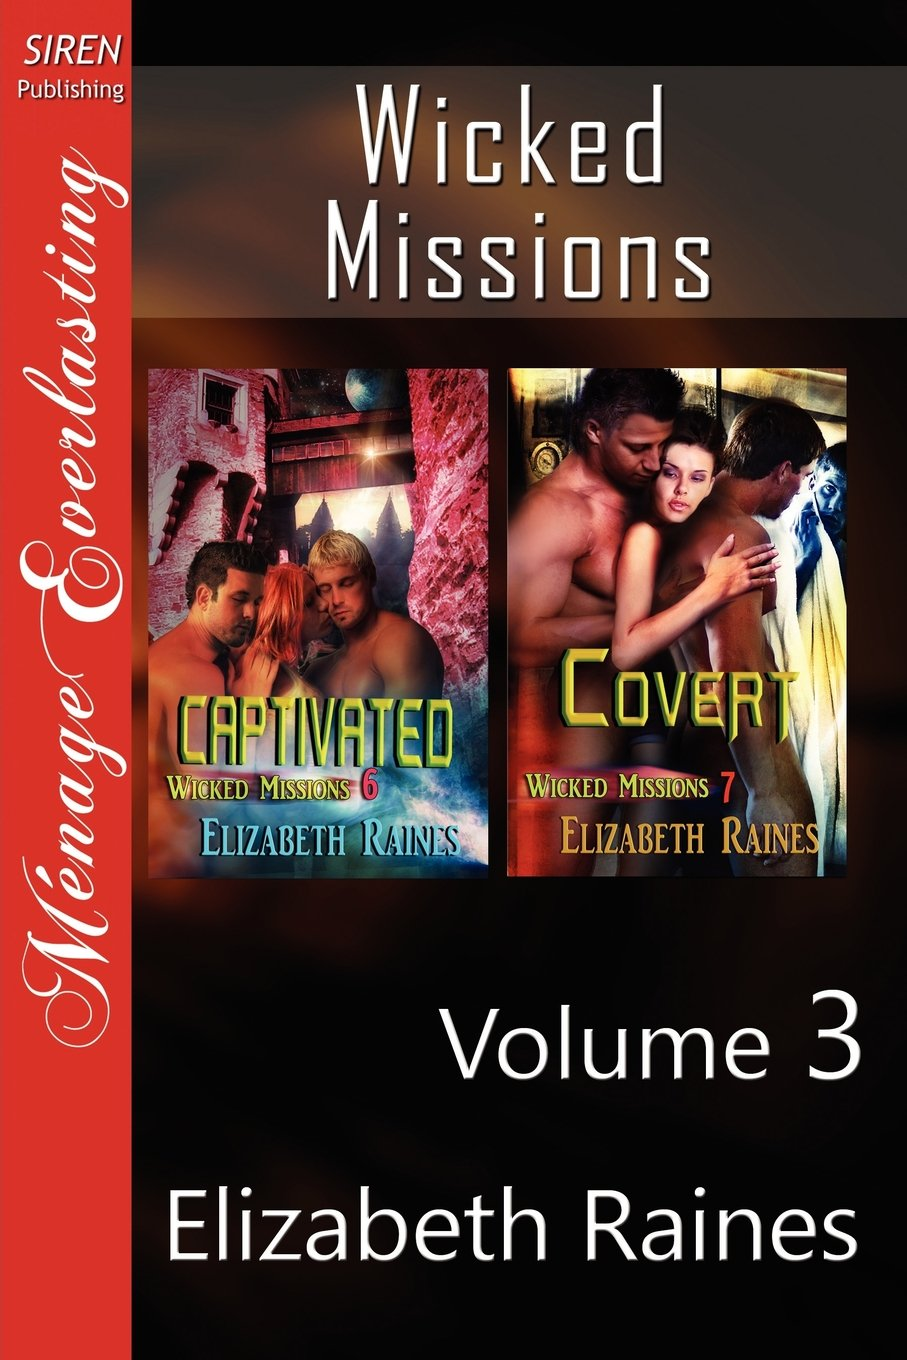 Read Online Wicked Missions, Volume 3 [Captivated: Covert] (Siren Publishing Menage Everlasting) pdf